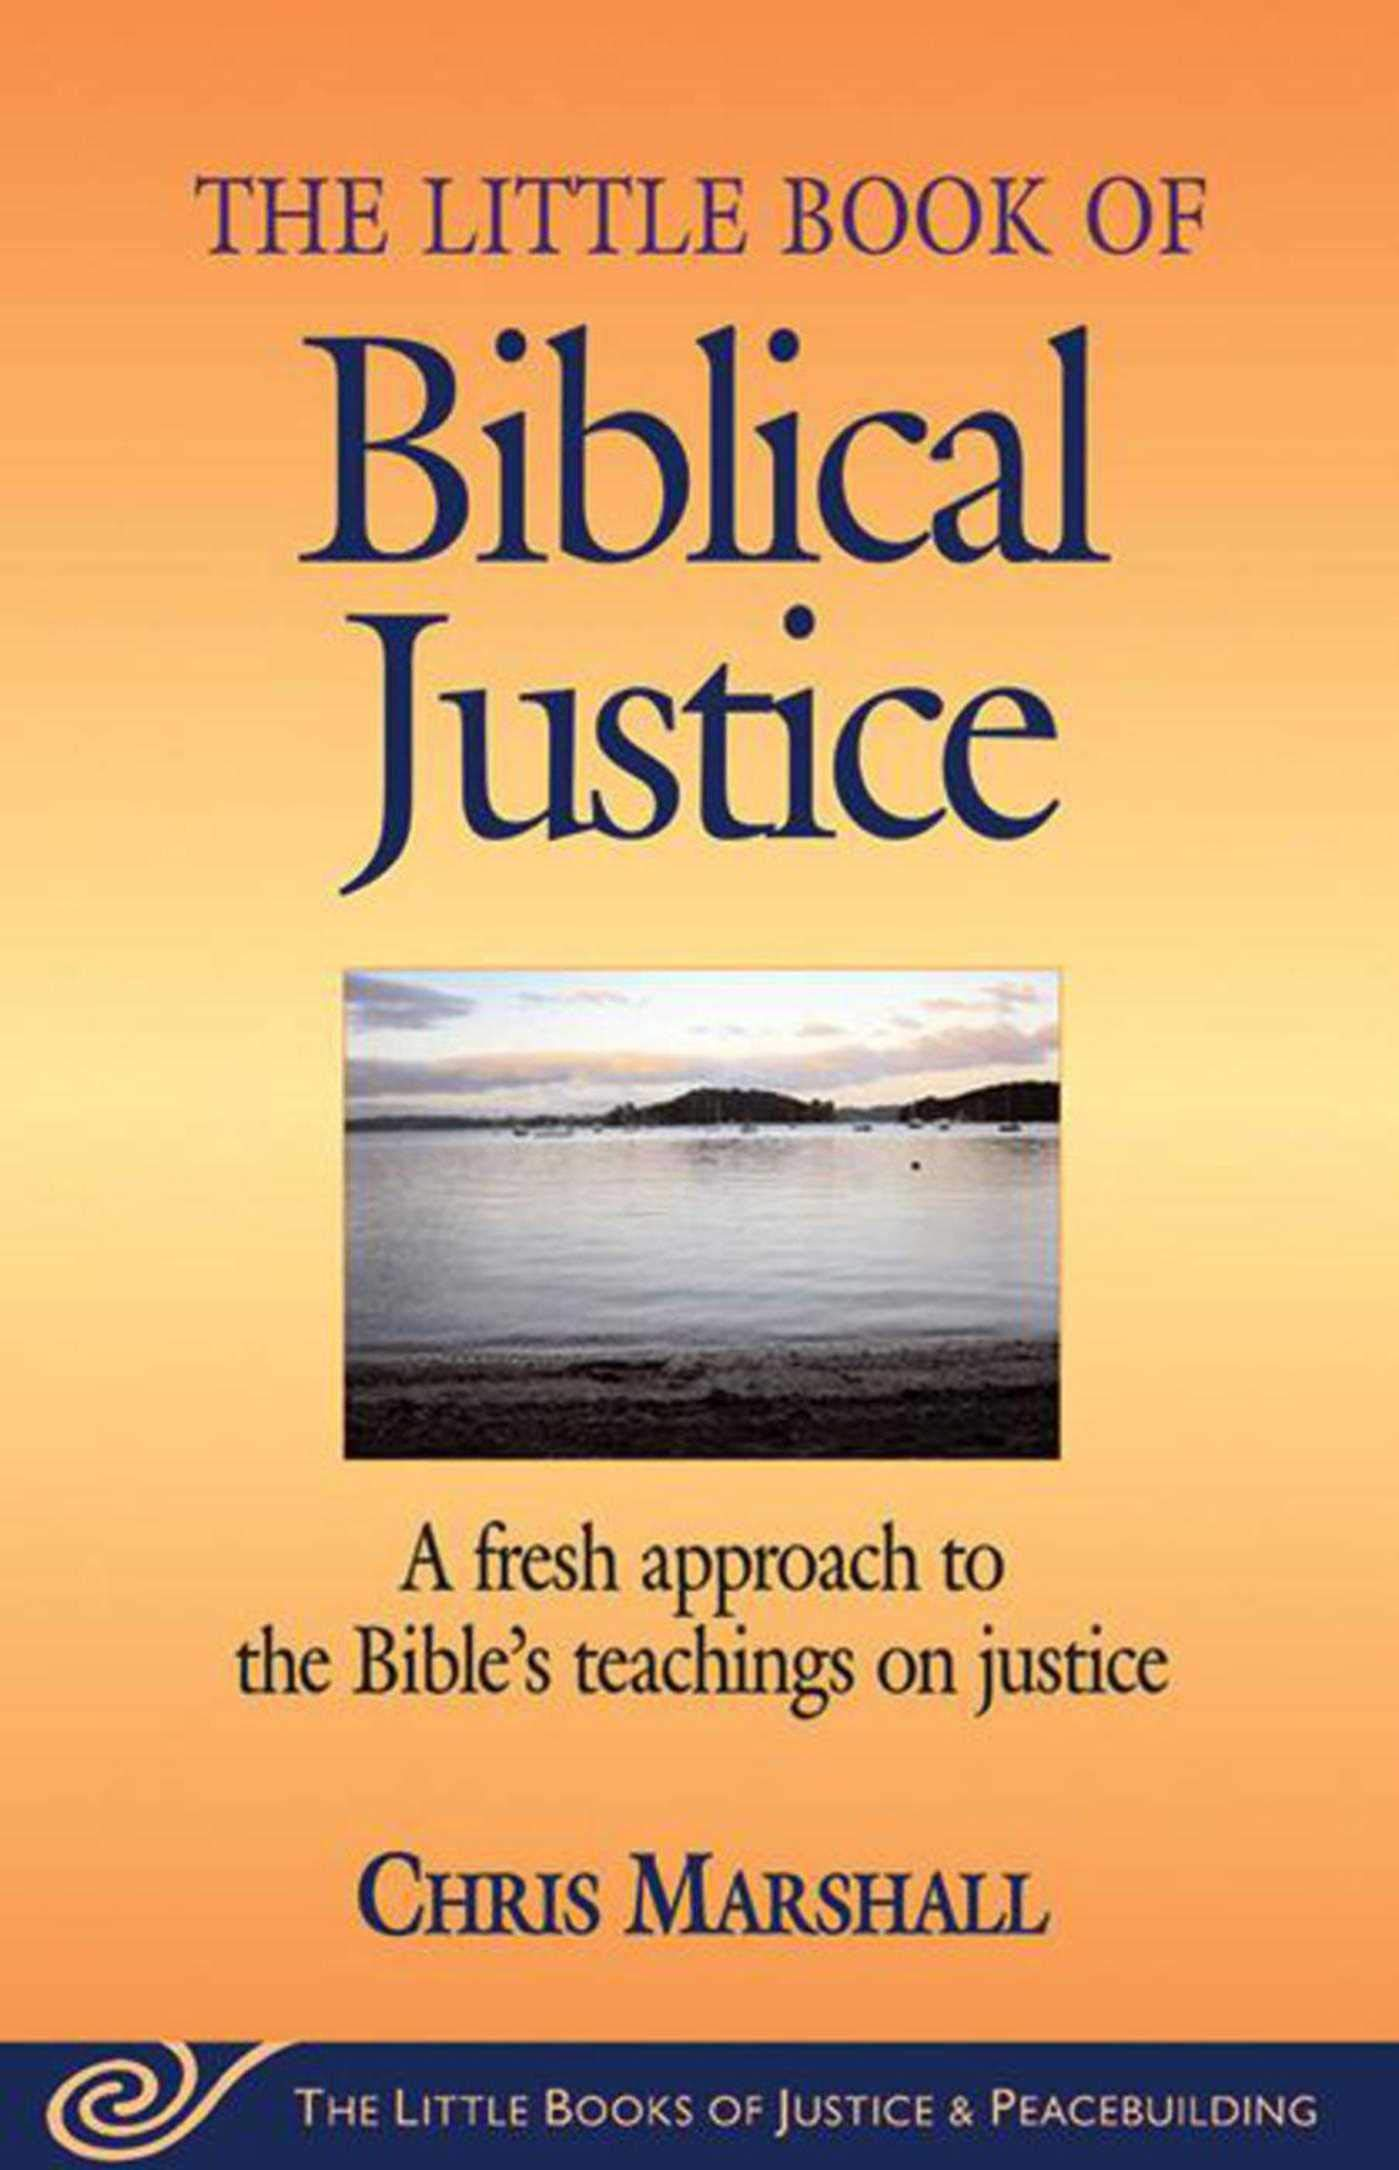 The Little Book Of Biblical Justice: A Fresh Approach To The Bible's Teaching On Justice (The Little Books Of Justice And ...